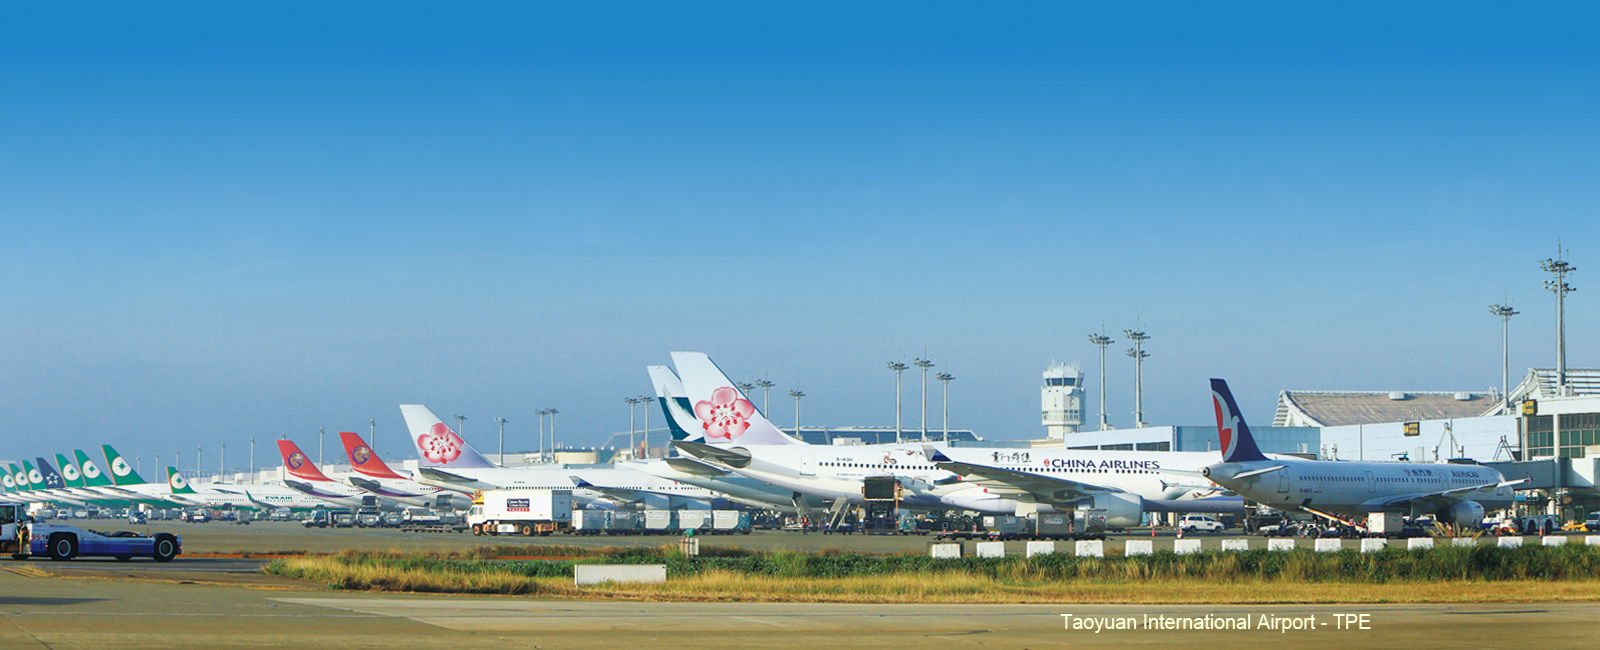 Taoyuan International Airport - TPE 桃園國際機場